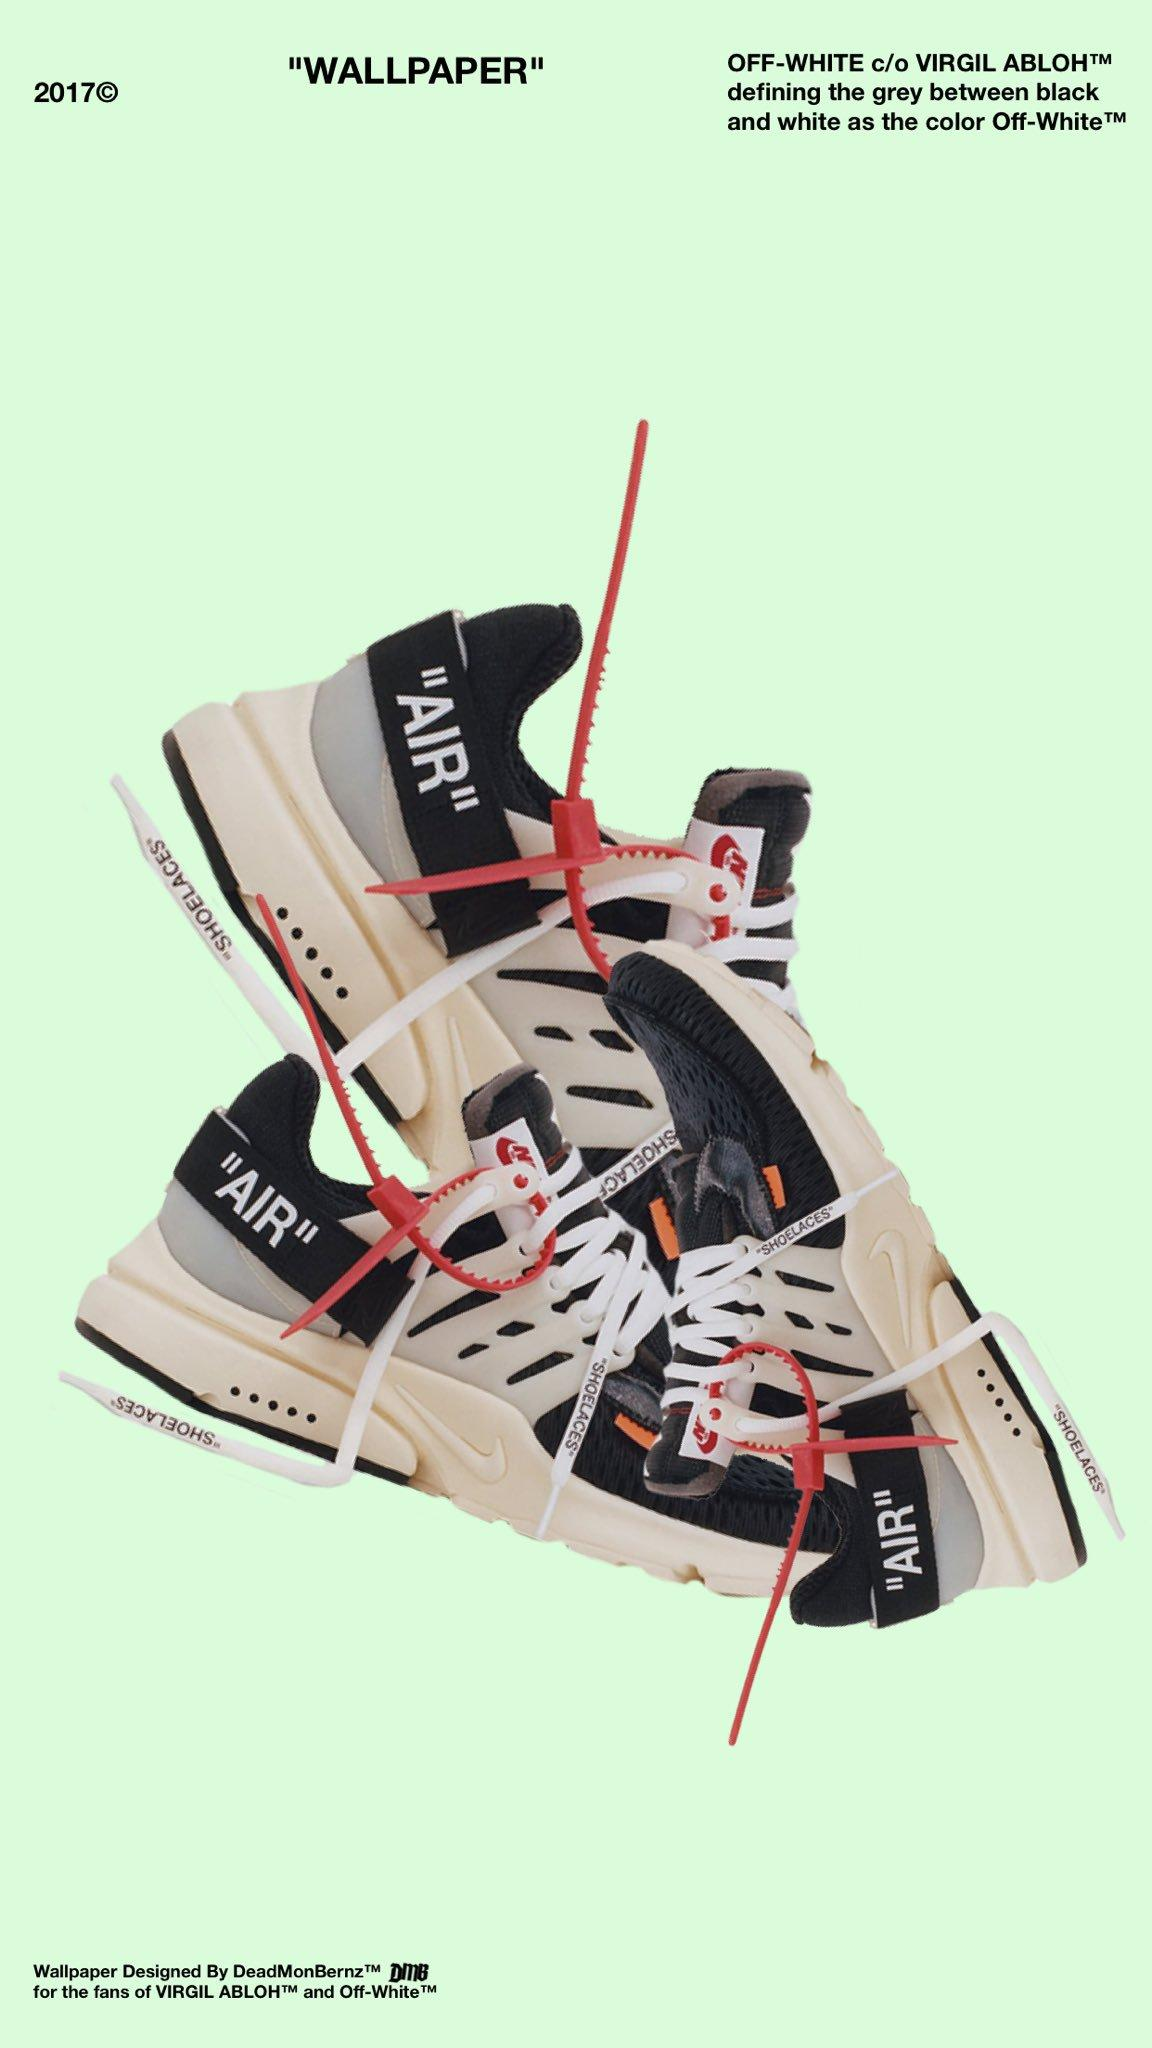 Off-white Shoes Wallpapers - Wallpaper Cave